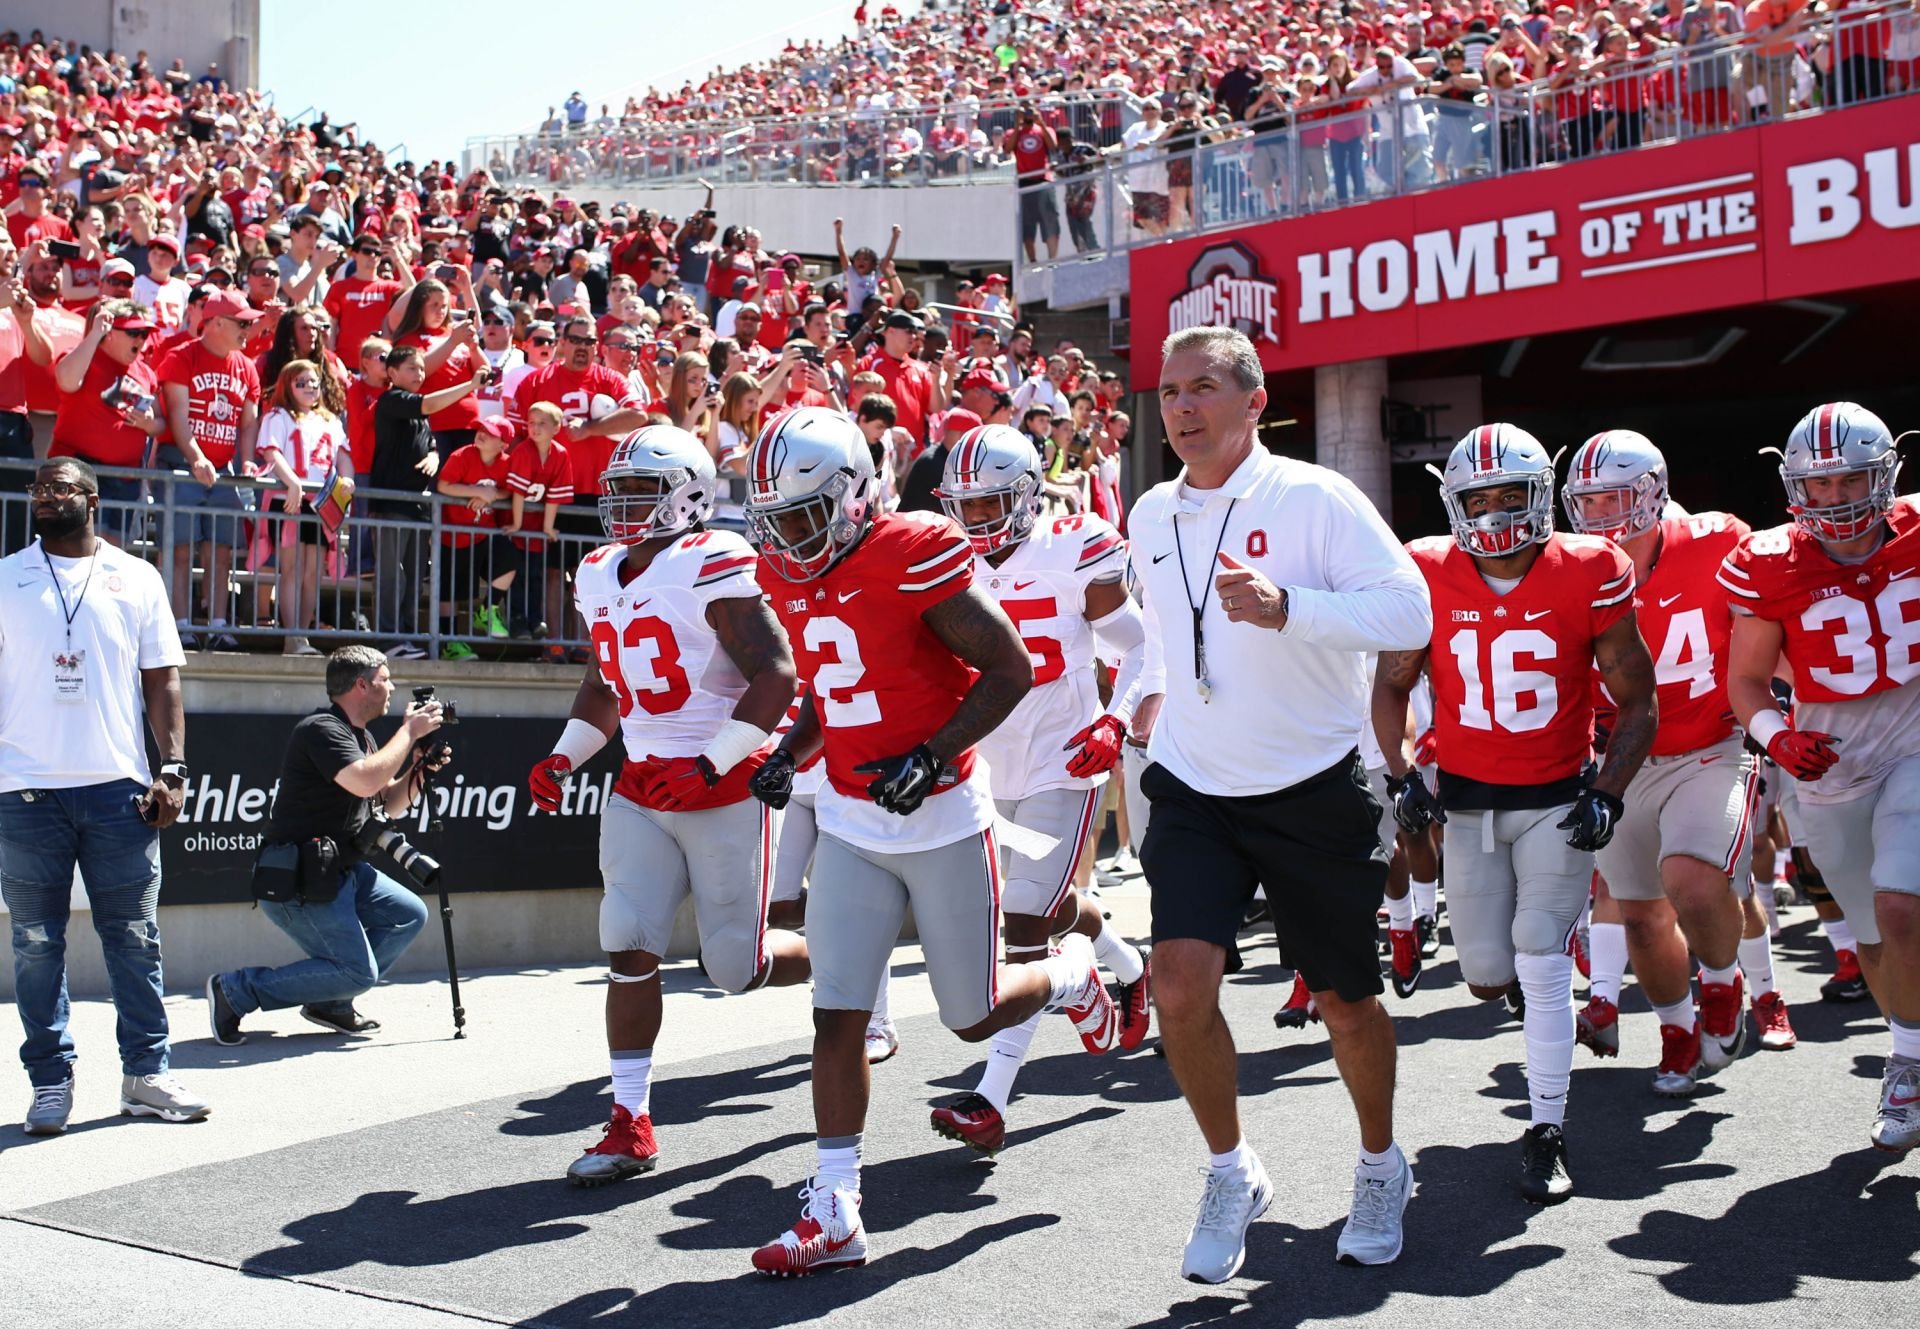 Ohio State head coach Urban Meyer leads the Scarlet and Gray teams onto the field prior to the spring game at Ohio Stadium. Aaron Doster-USA TODAY Sports